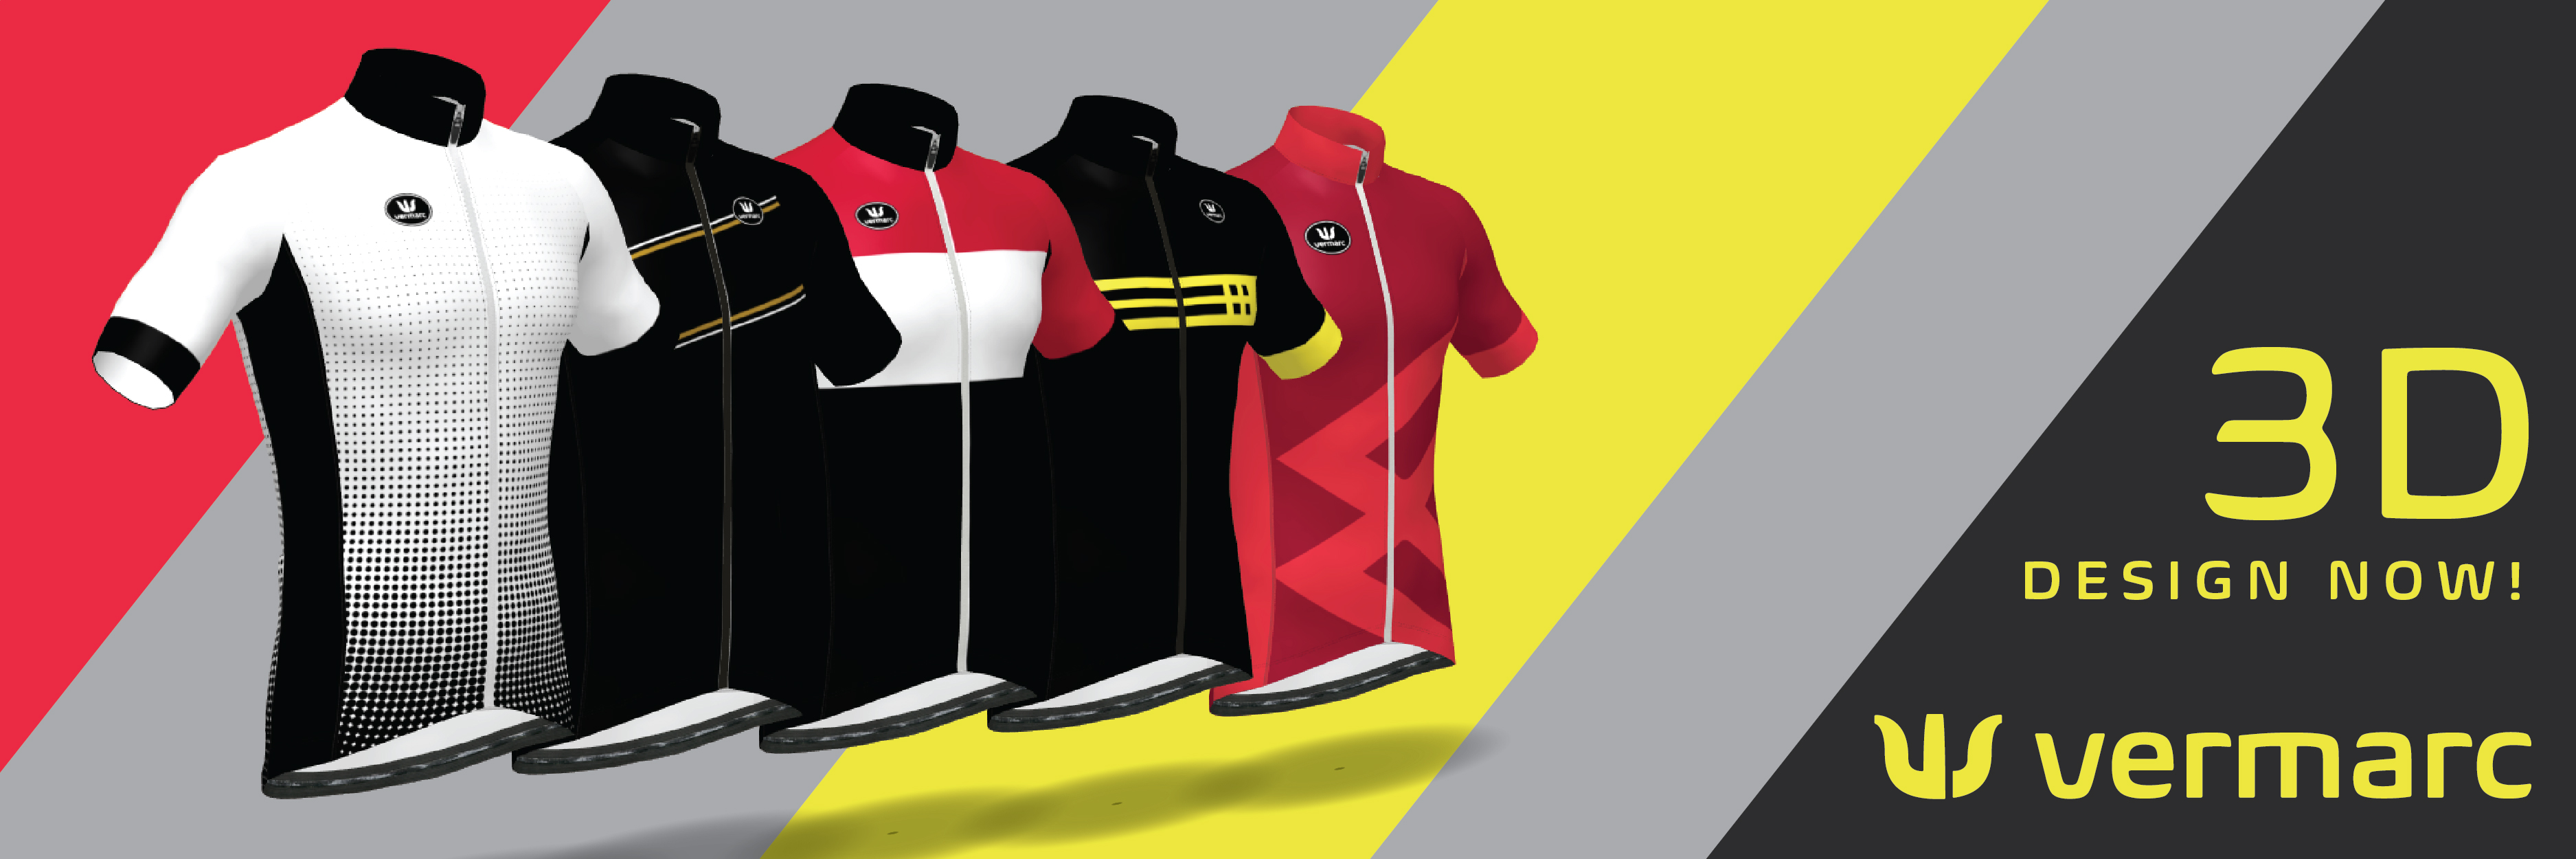 www.vermarcsport.com/nl/design-your-own-customteamwear